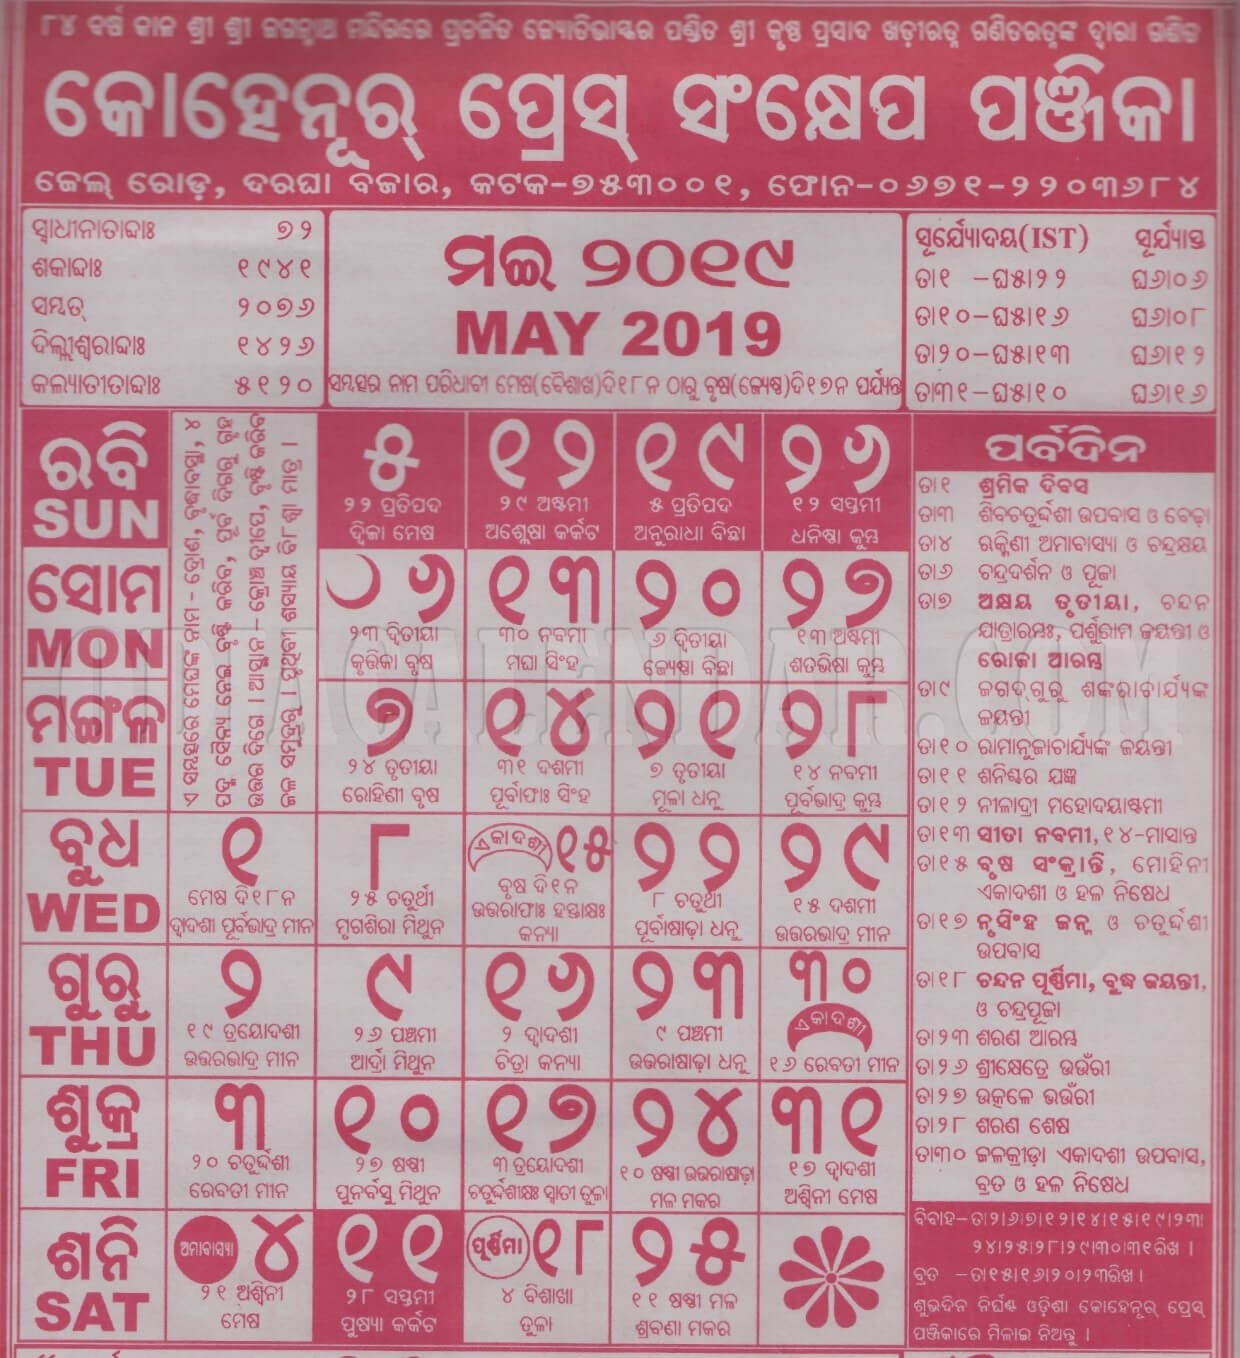 Odia Kohinoor Calendar 2019 May View And Download Free Odia Calendar 2019